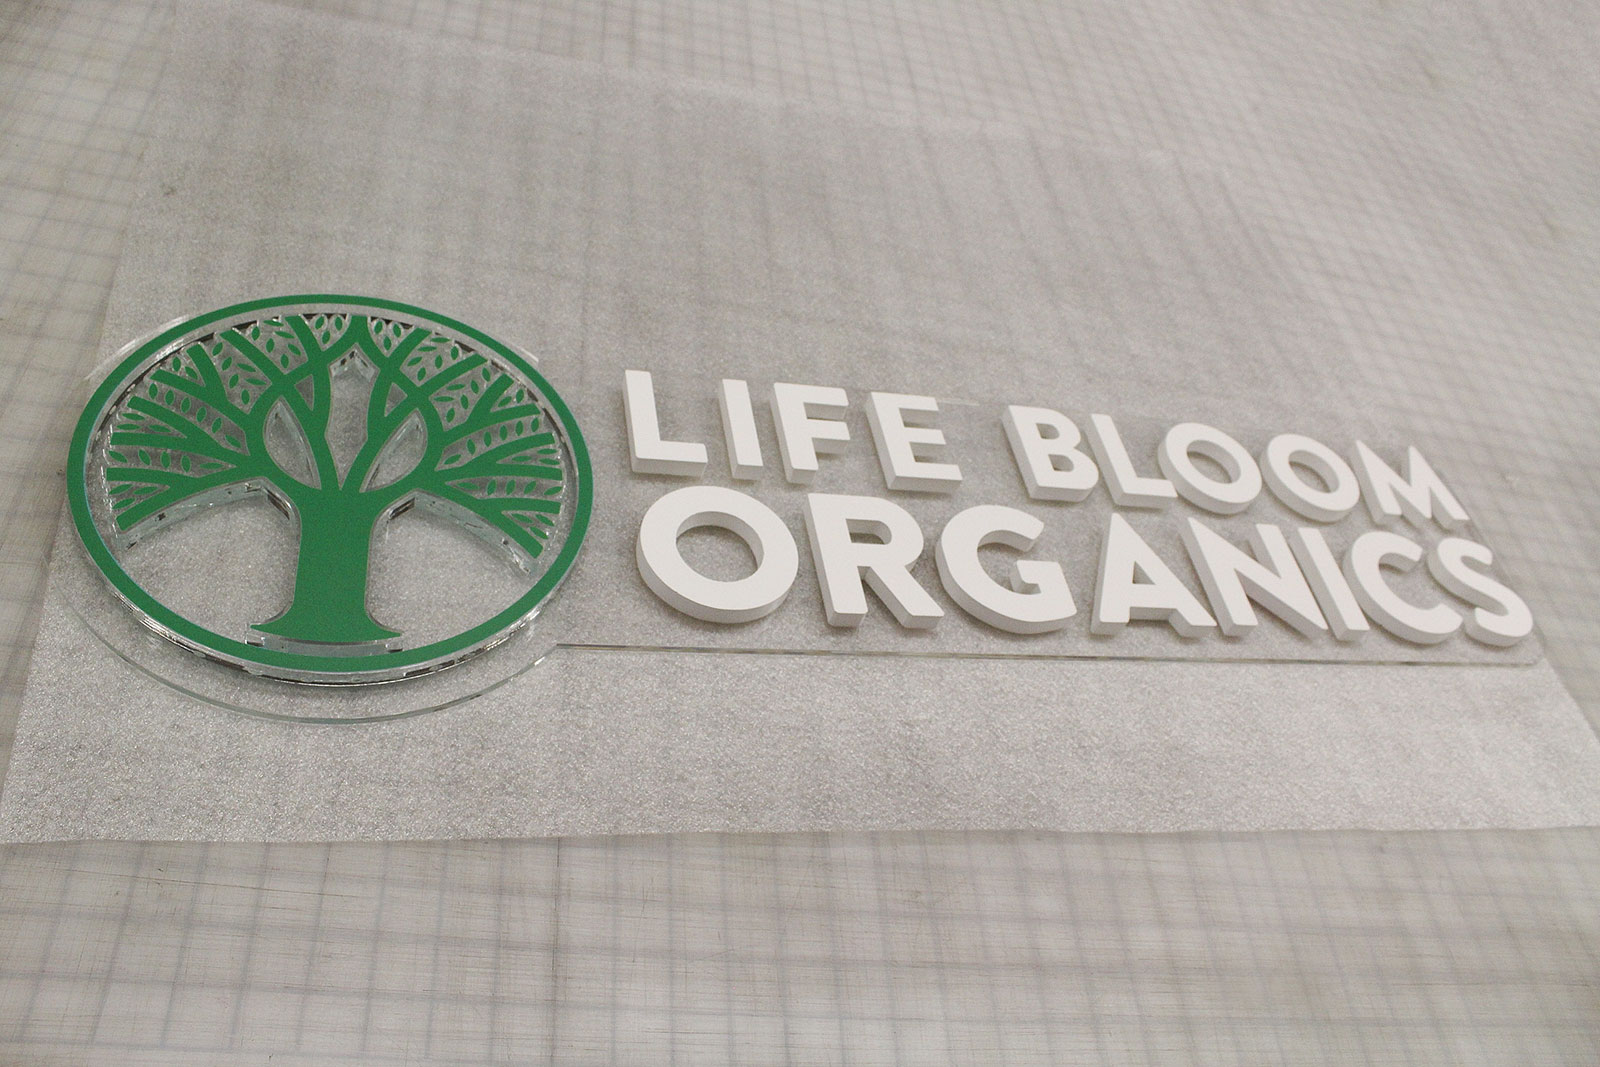 Life Bloom Organics 3d acrylic letters and logo sign on a transparent background for branding